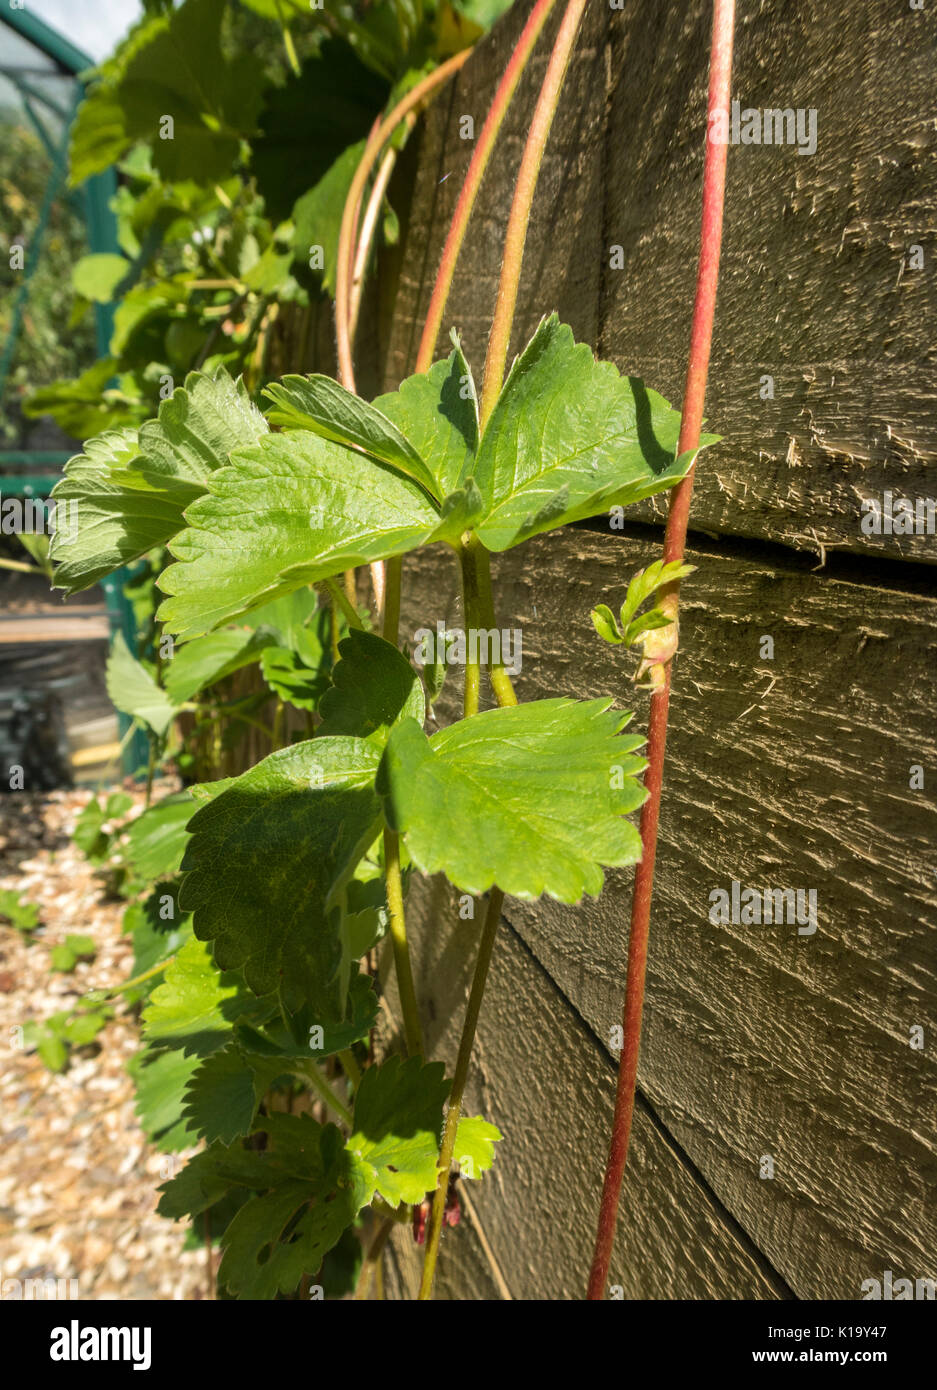 Strawberry 'Cambridge Favourite' throwing out runners which trail down a garden wall. - Stock Image